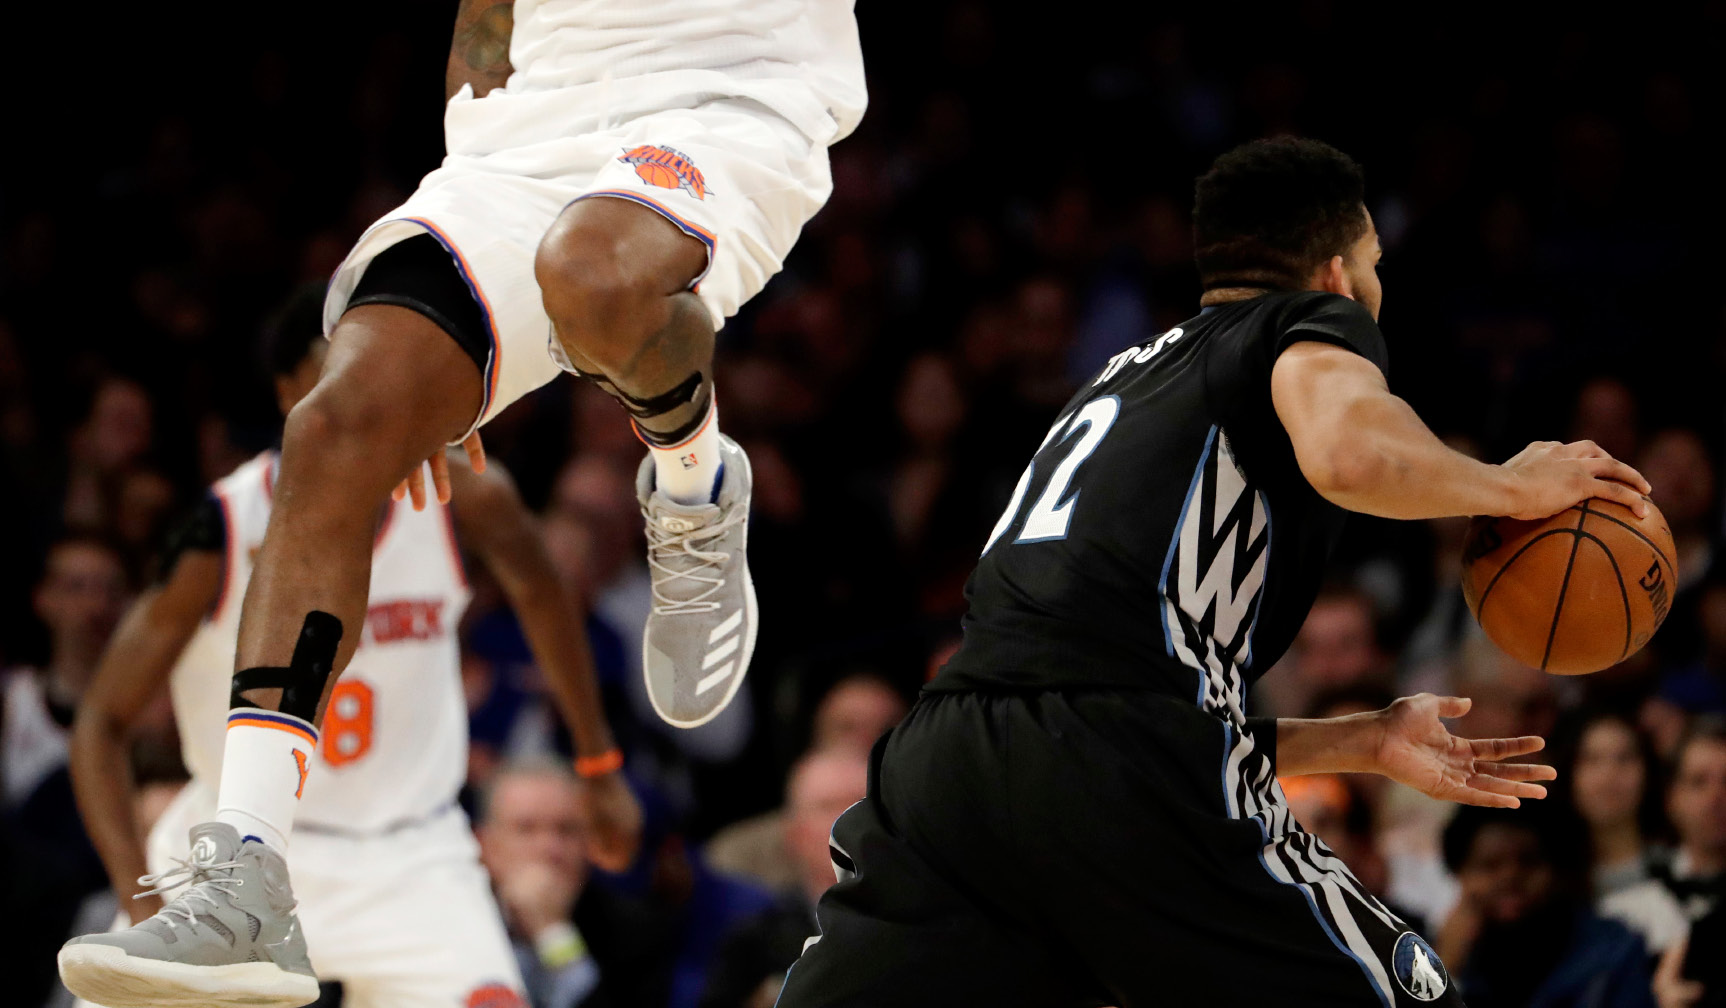 Minnesota Timberwolves center Karl-Anthony Towns, right, dodges New York Knicks center Kyle O